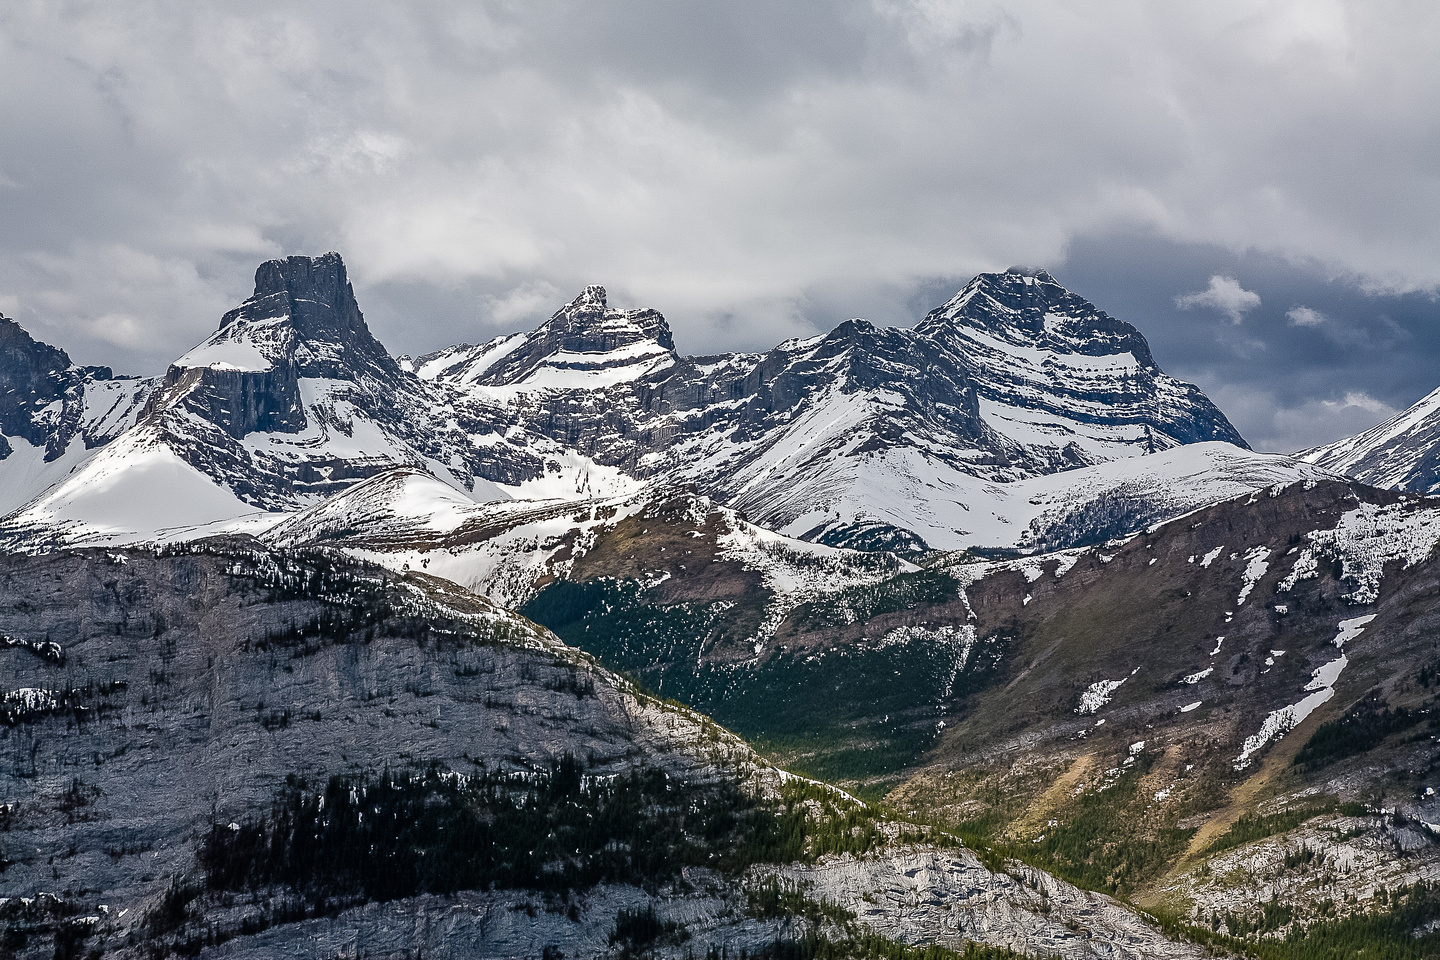 From left to right we have The Fortress, Gusty Peak and Mount Galatea.